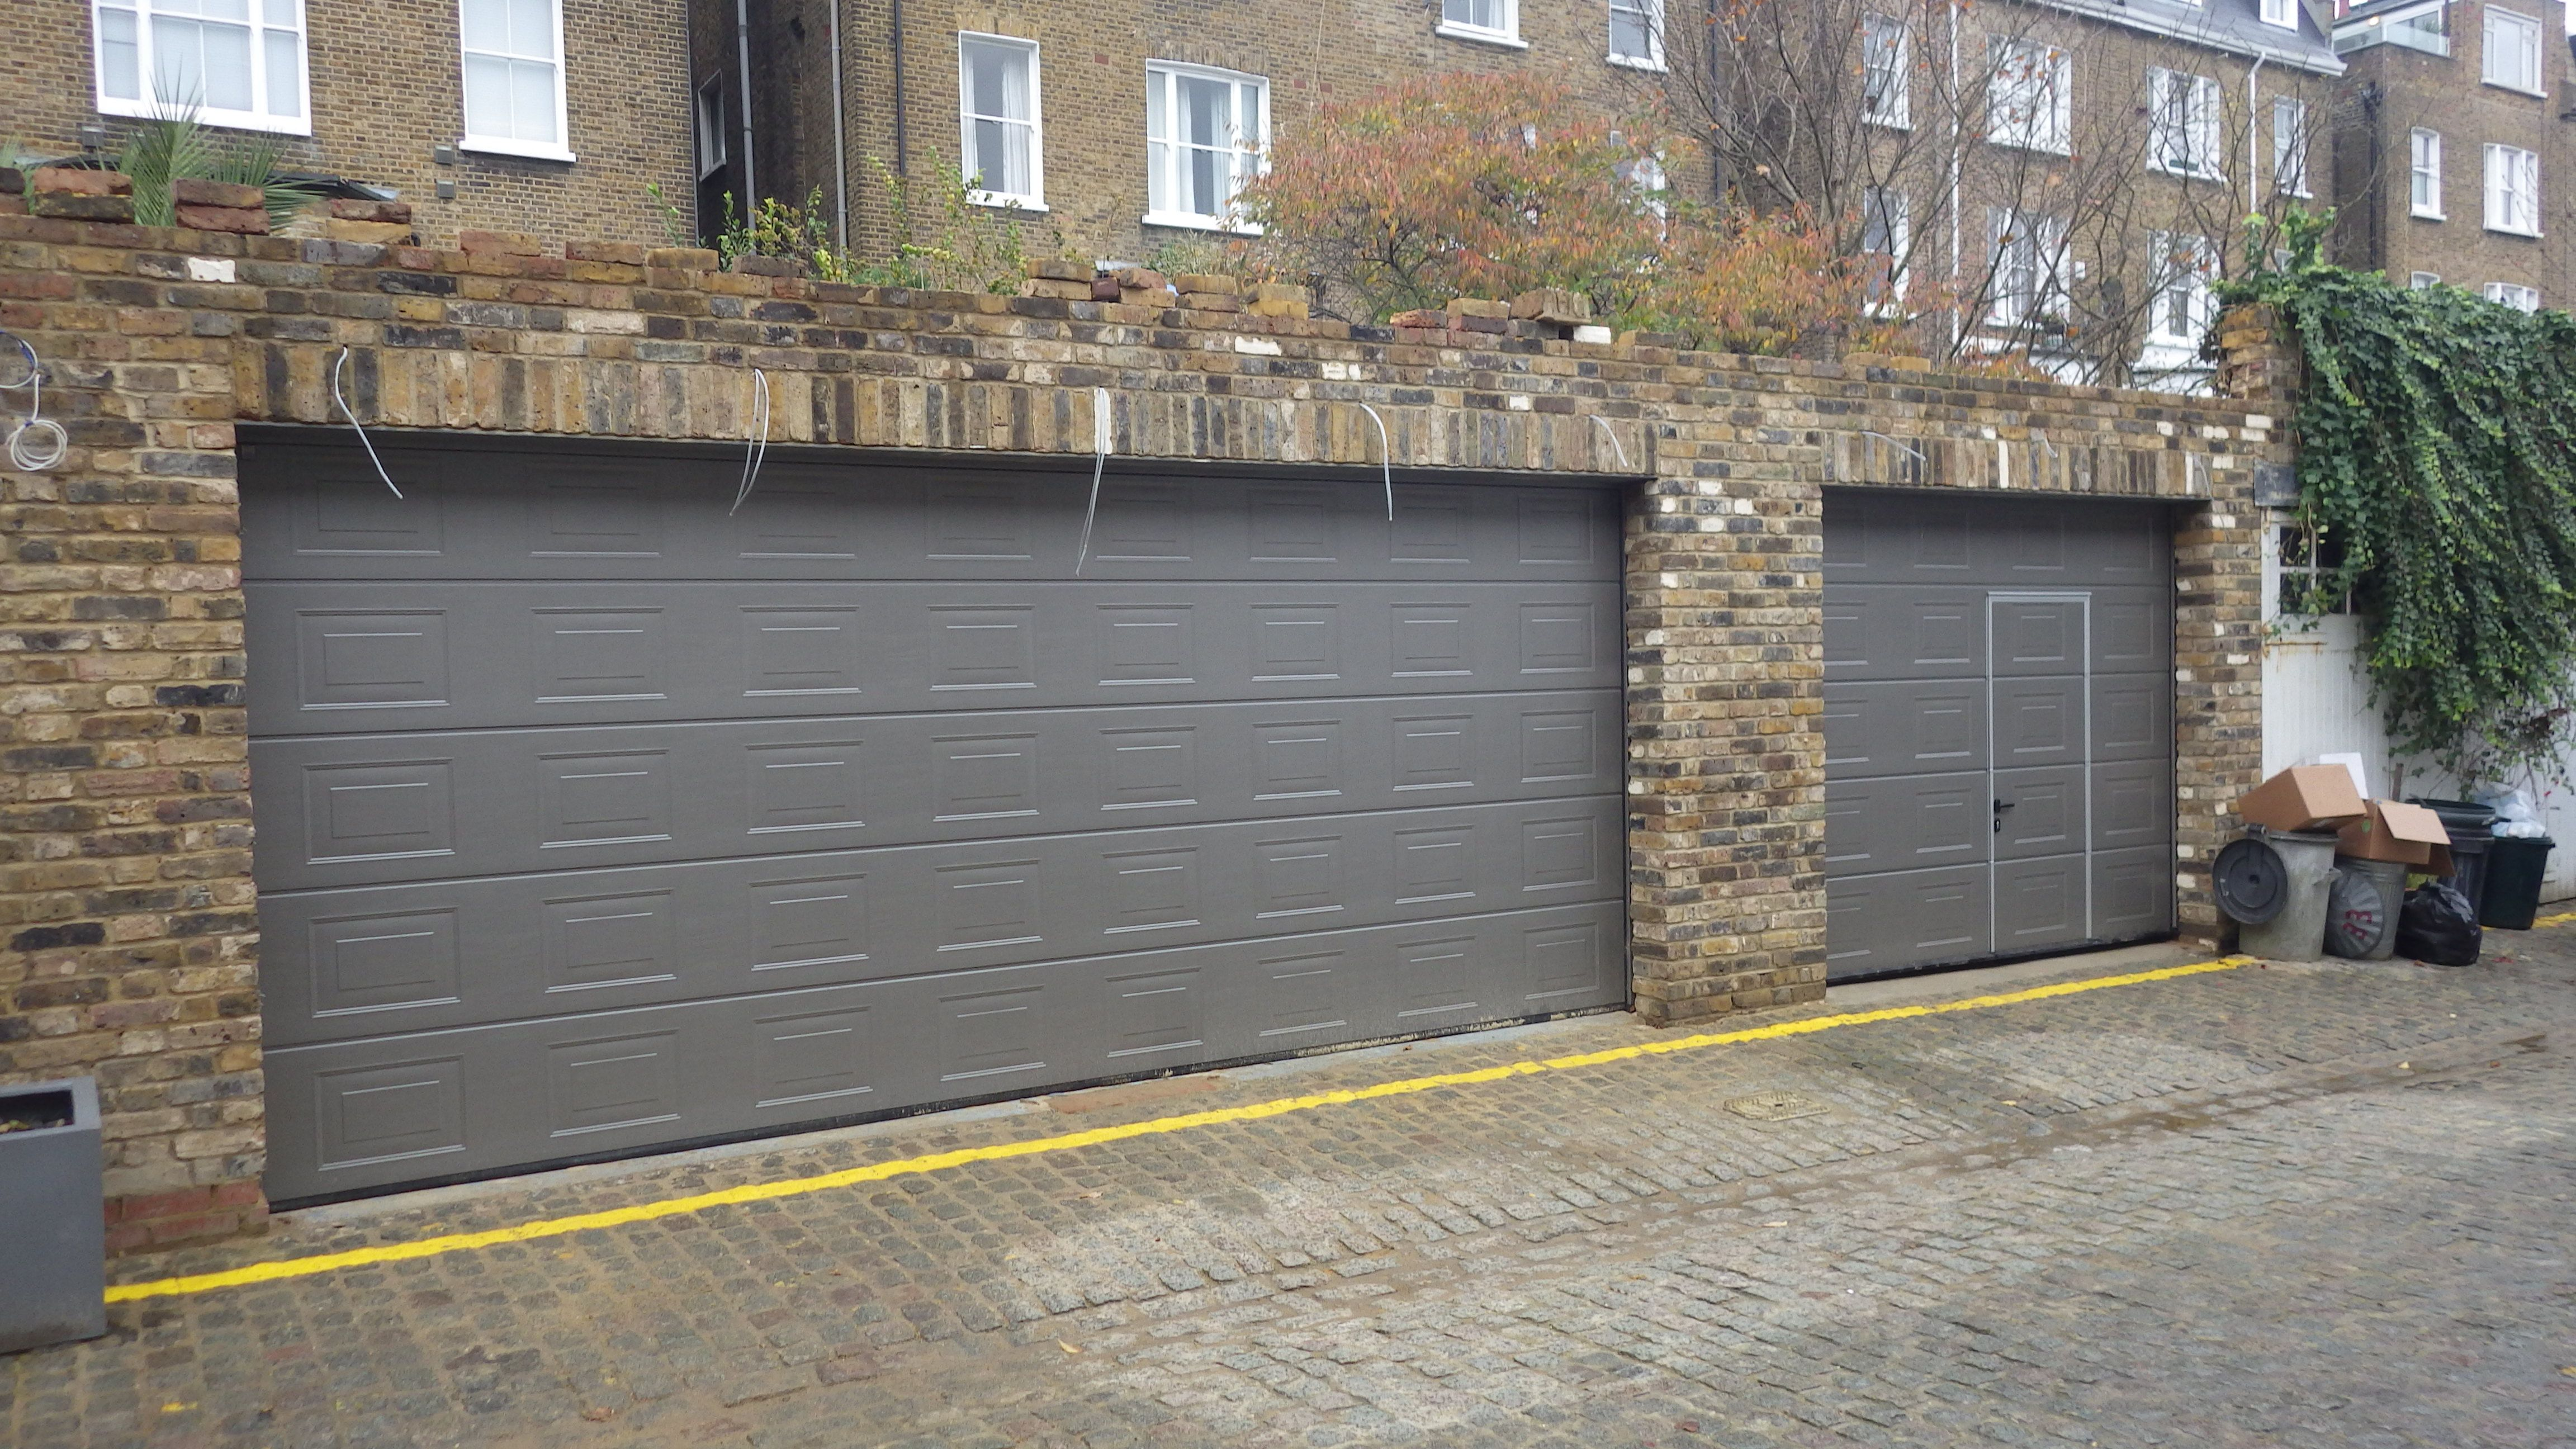 Hrmann sectional s panelled grey aluminium ral 9007 lpu40 doors hrmann sectional s panelled grey aluminium ral 9007 doors with a wicket door built into the smaller of the two garage doors rubansaba